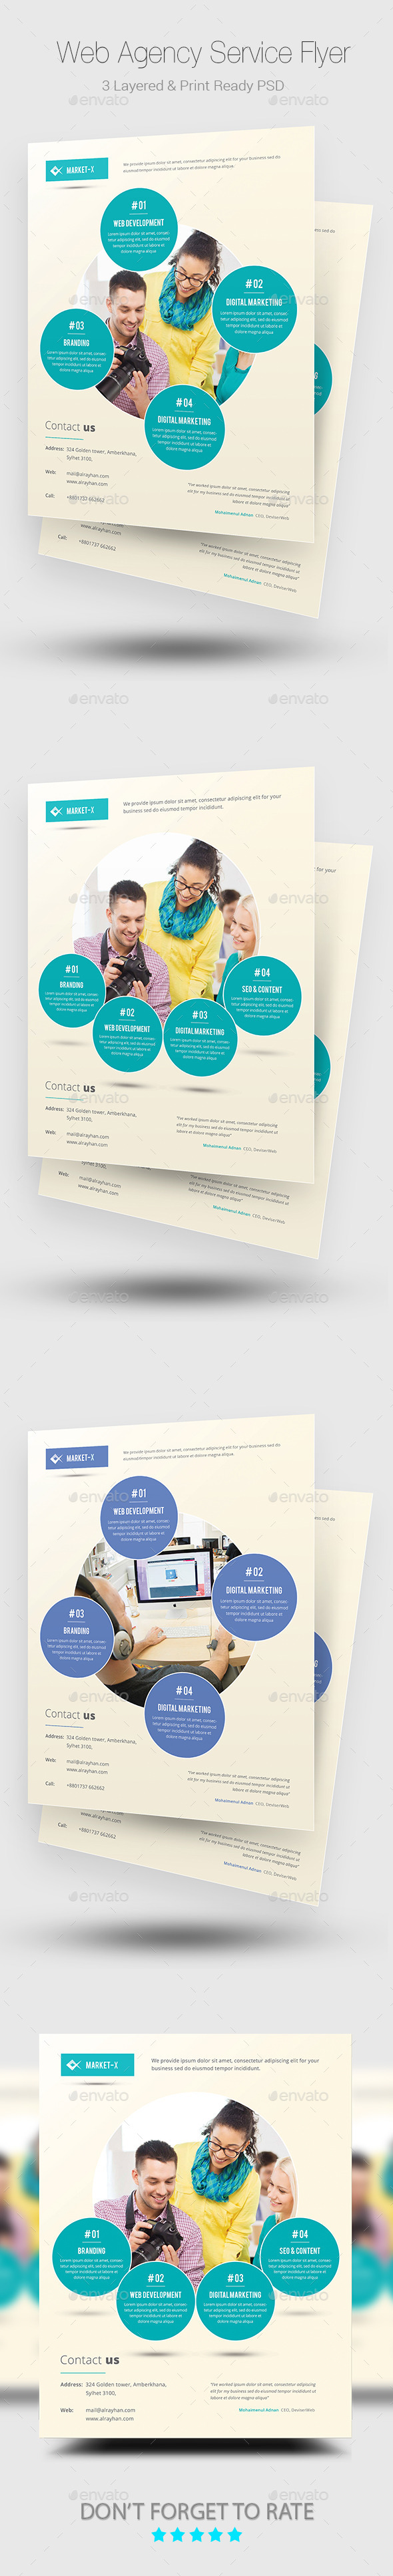 Web Agency Service Flyer Templates - Corporate Flyers